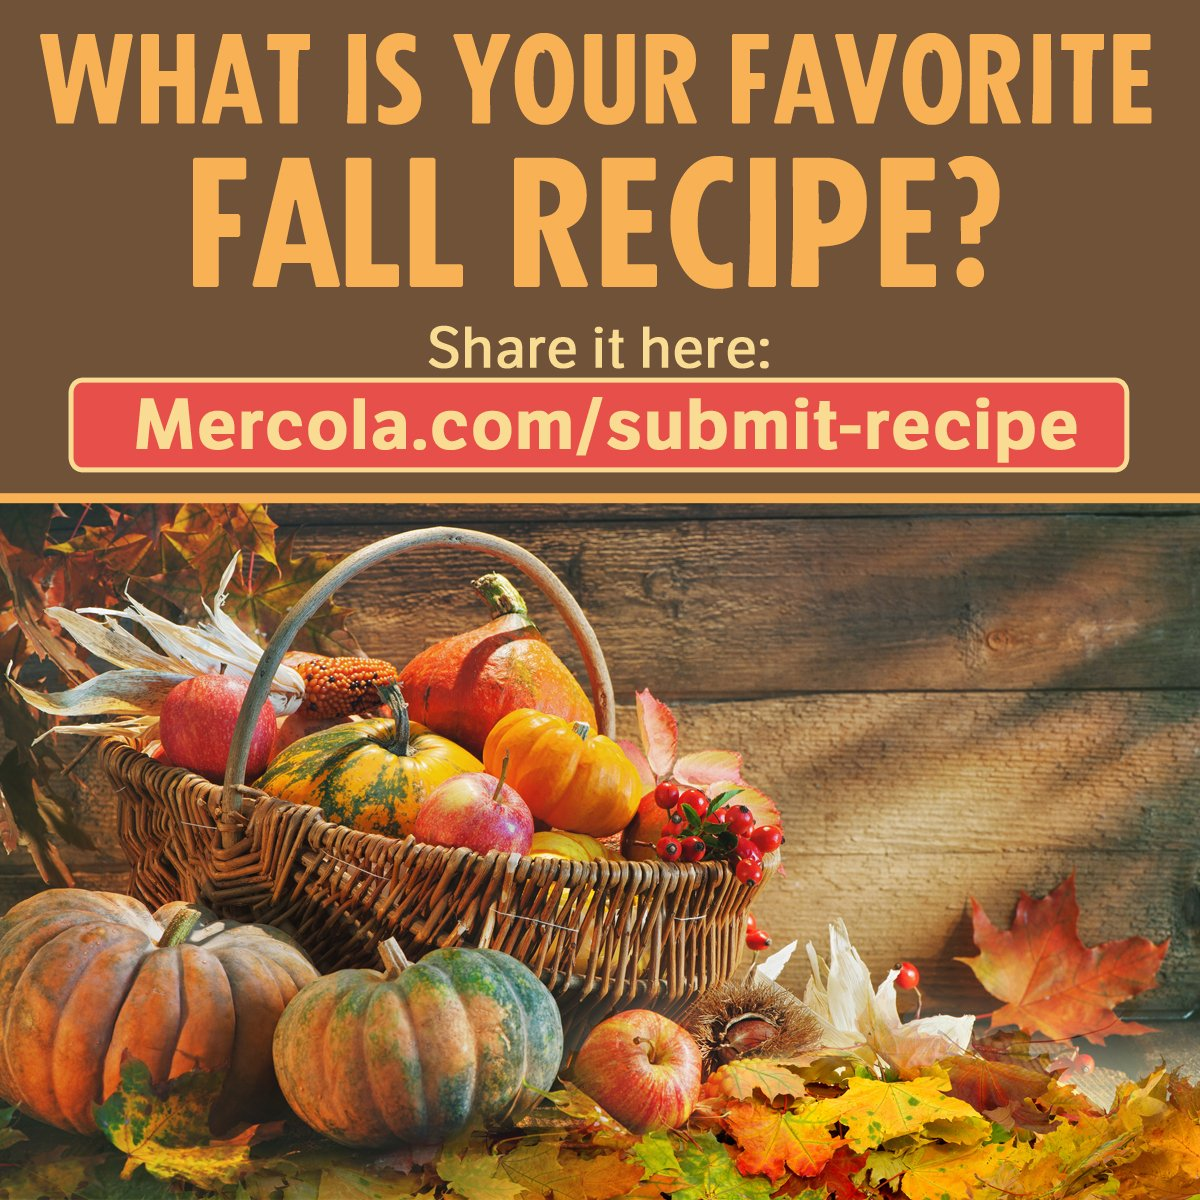 Do you have a fall recipe you're so proud of you want to share it with the world? We'd love to see it! Visit https://t.co/YSg2sKVF0r now for a chance to get featured on our site.